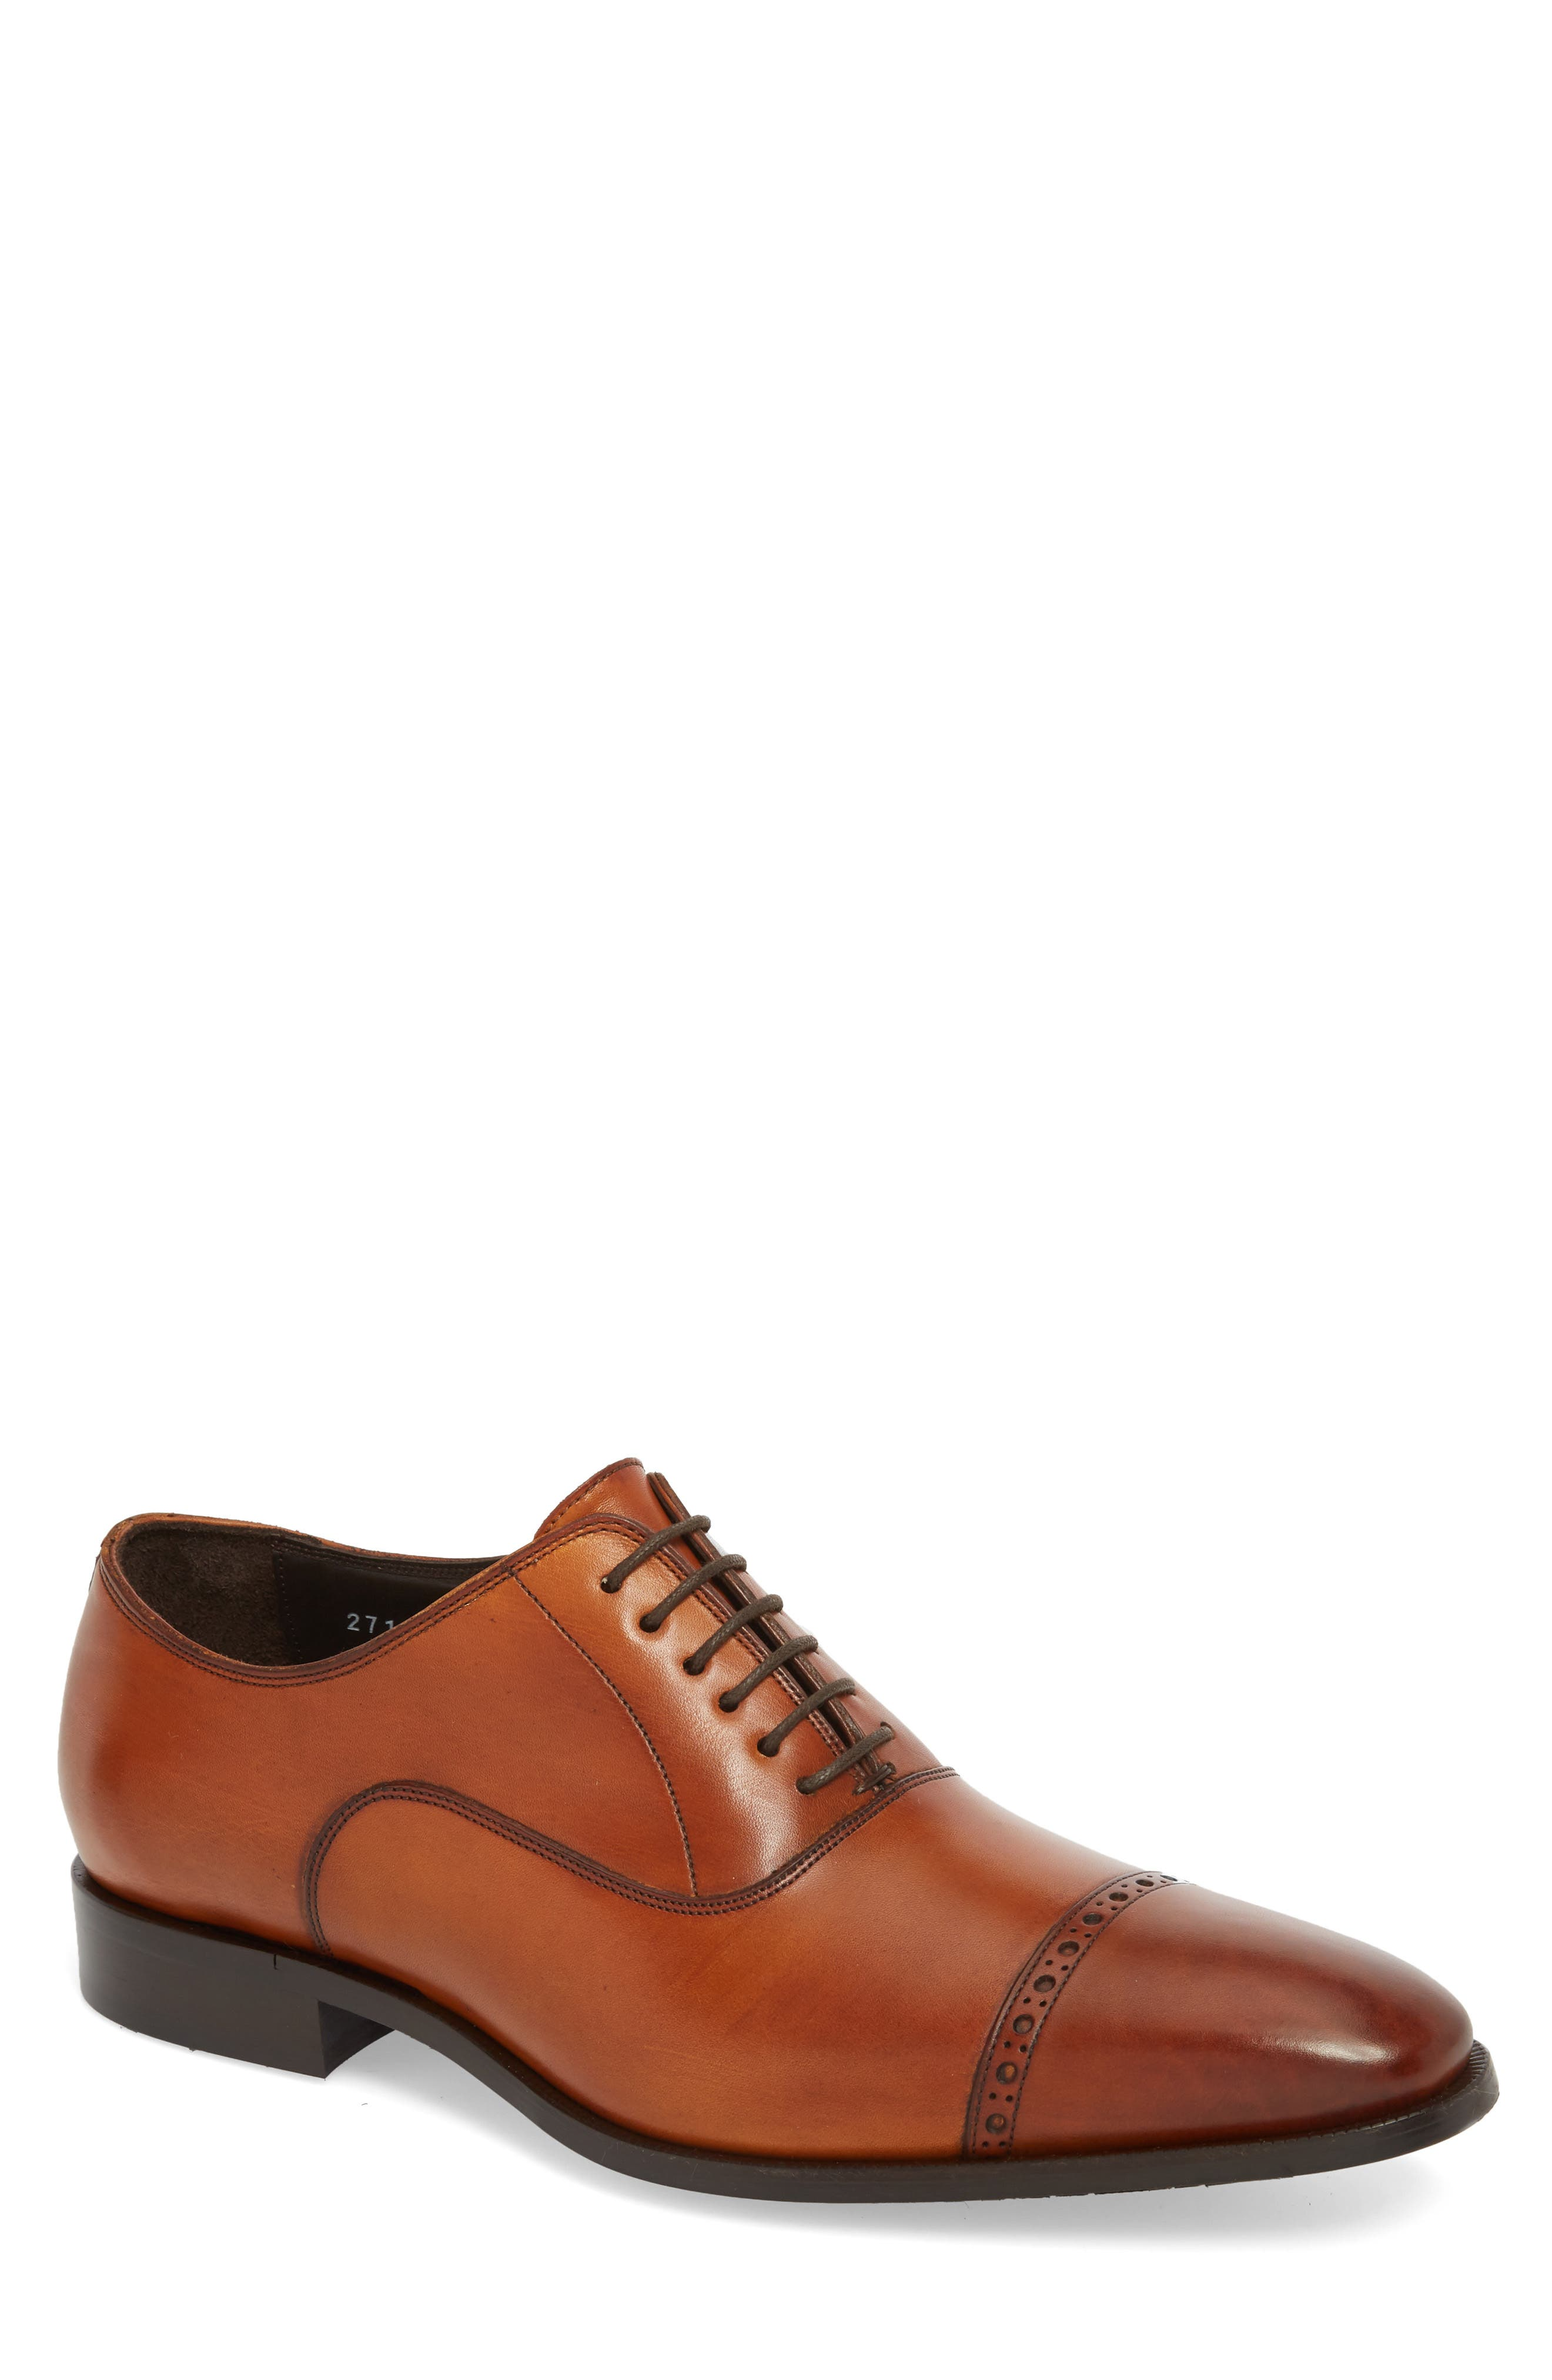 To Boot New York Harding Cap Toe Oxford, Brown